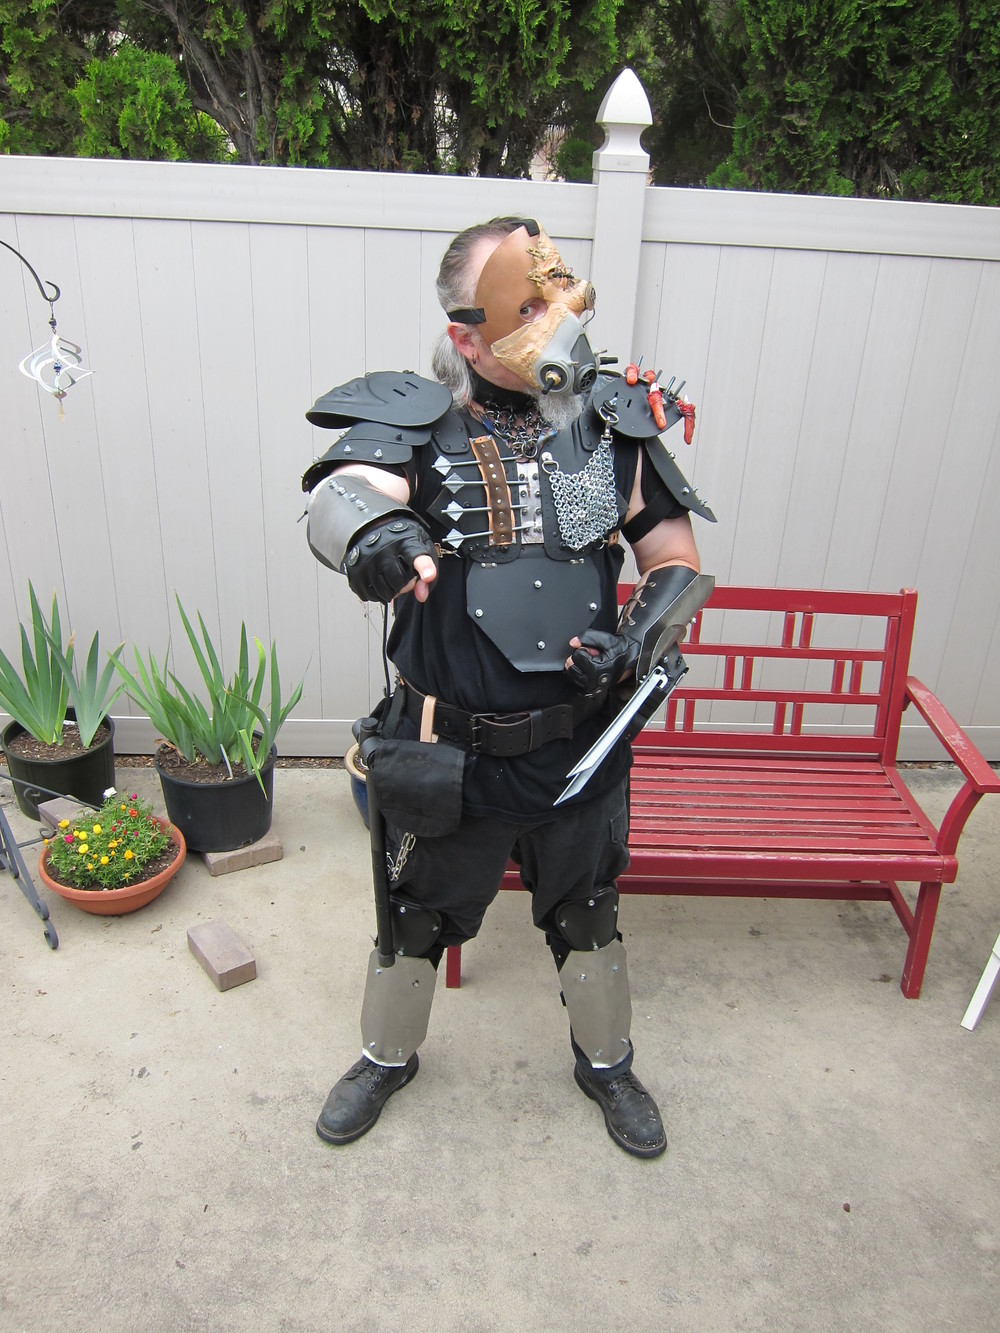 San Diego Comic Con (SDCC) Eric = cosplay original costume inspired by Mad Max (Wasteland Warrior)